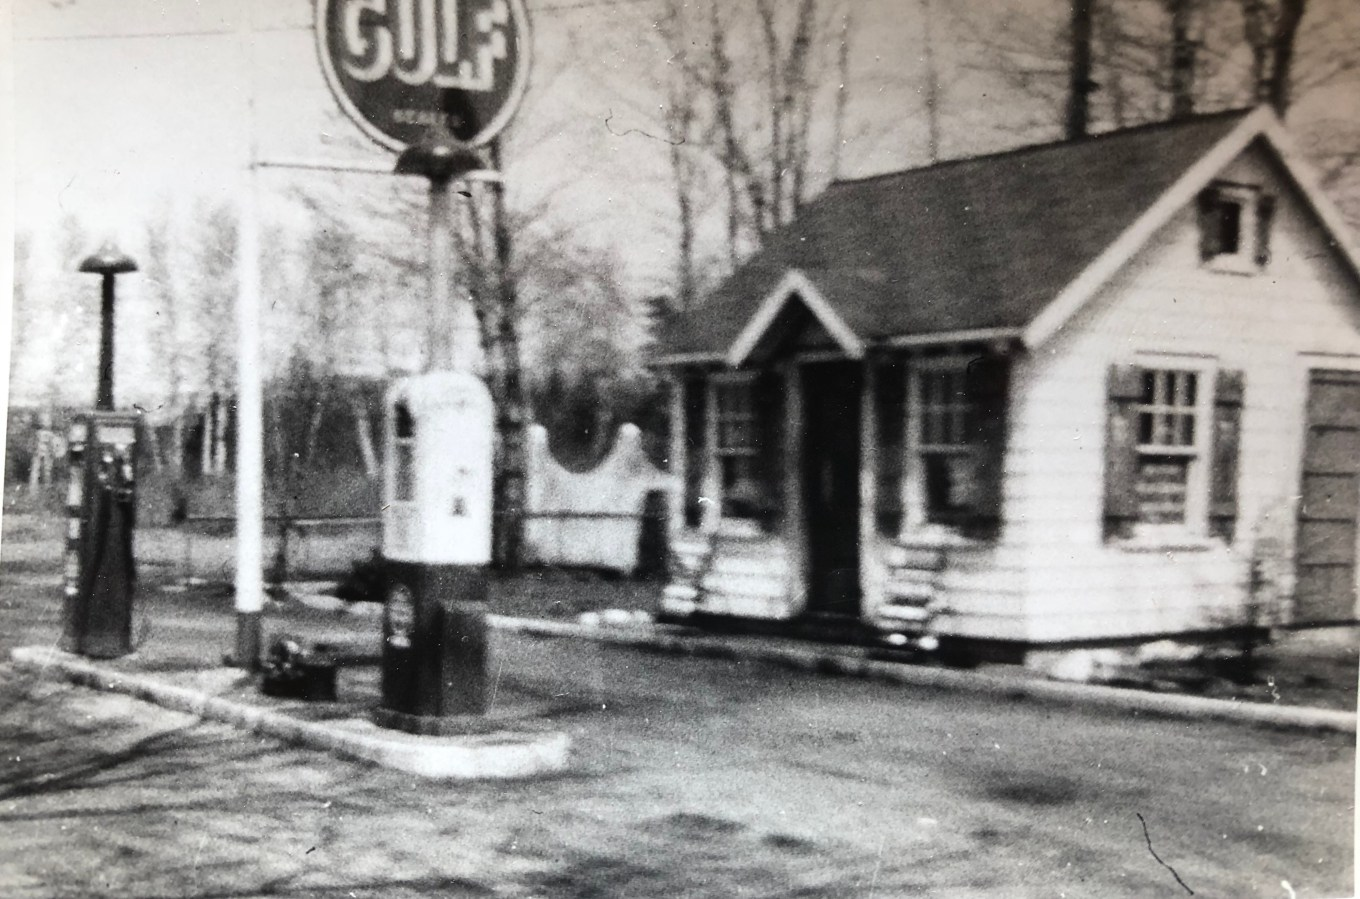 Late 1940s: Gulf station near current location of Burlington House of Pizza, Cambridge St Burlington MA